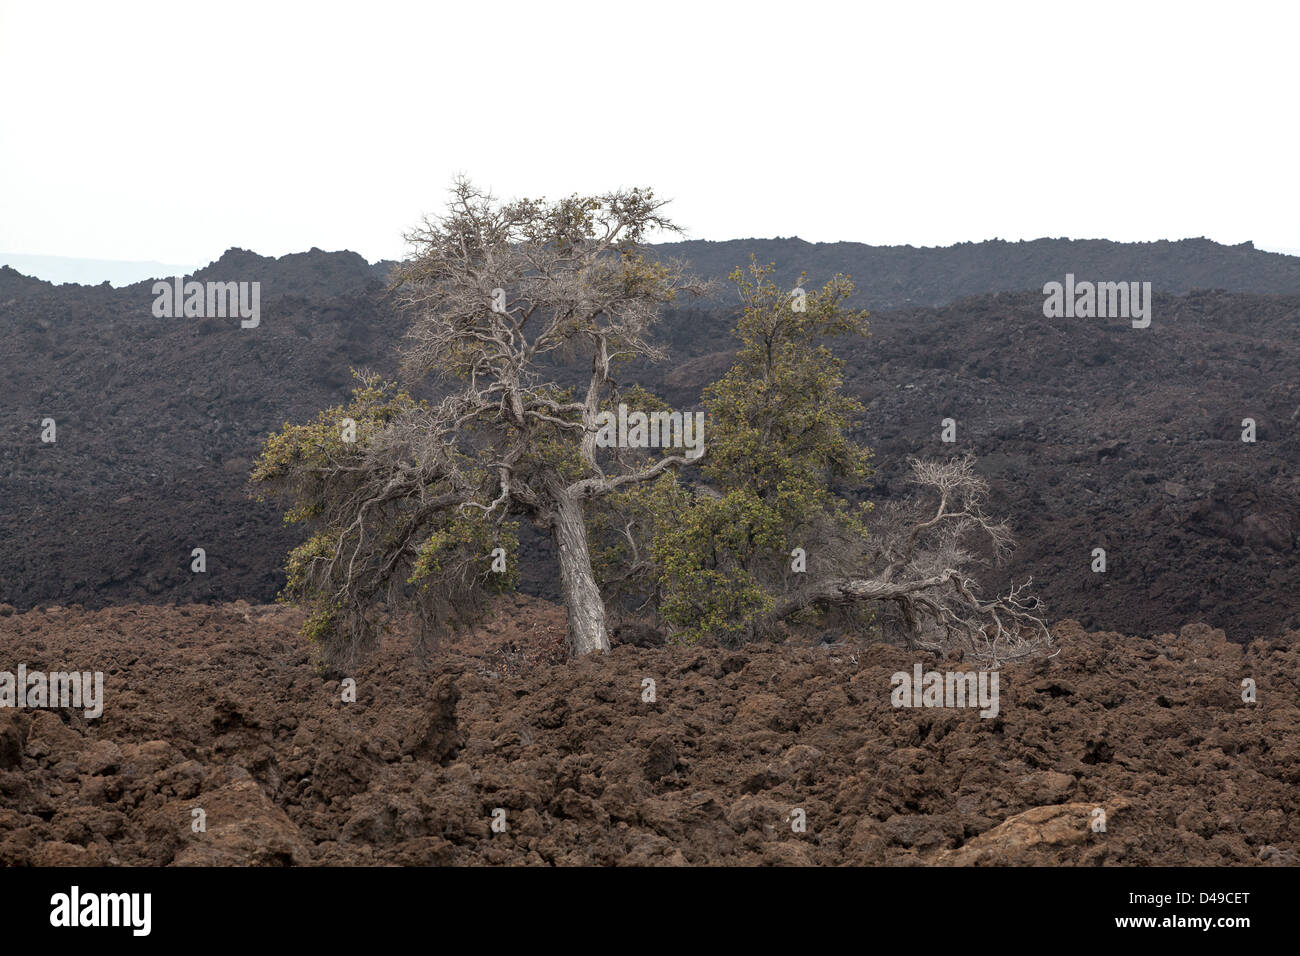 A large tree alone in lava landscape at The Big Island, Hawaii, USA - Stock Image